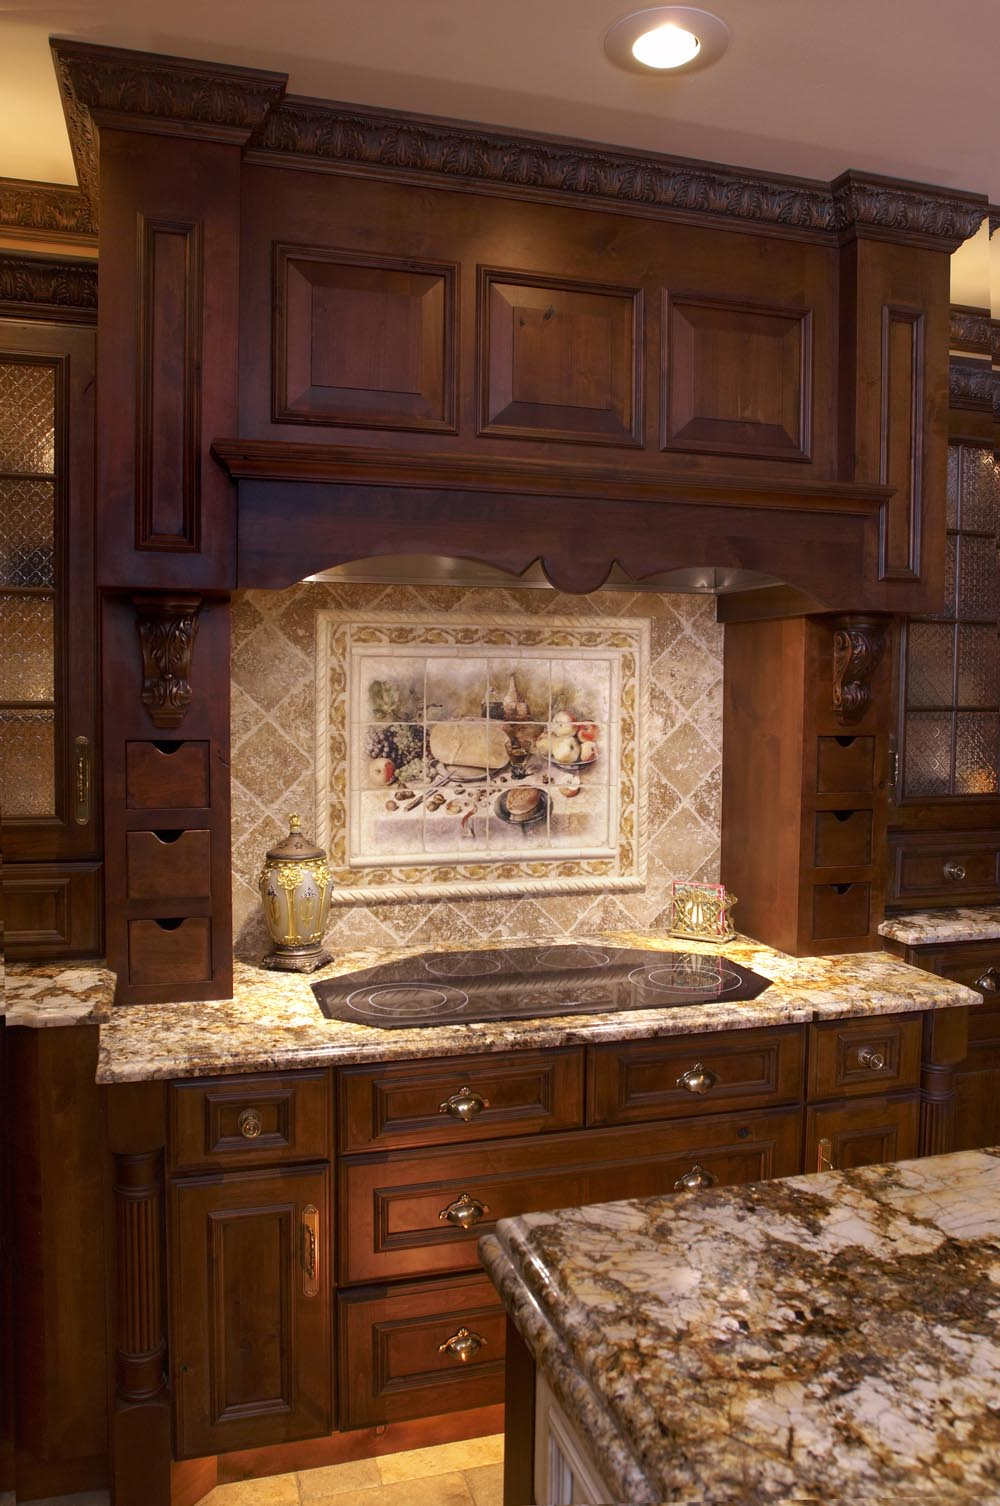 Dark kitchen cabinets backsplash ideas | Interior & Exterior Doors